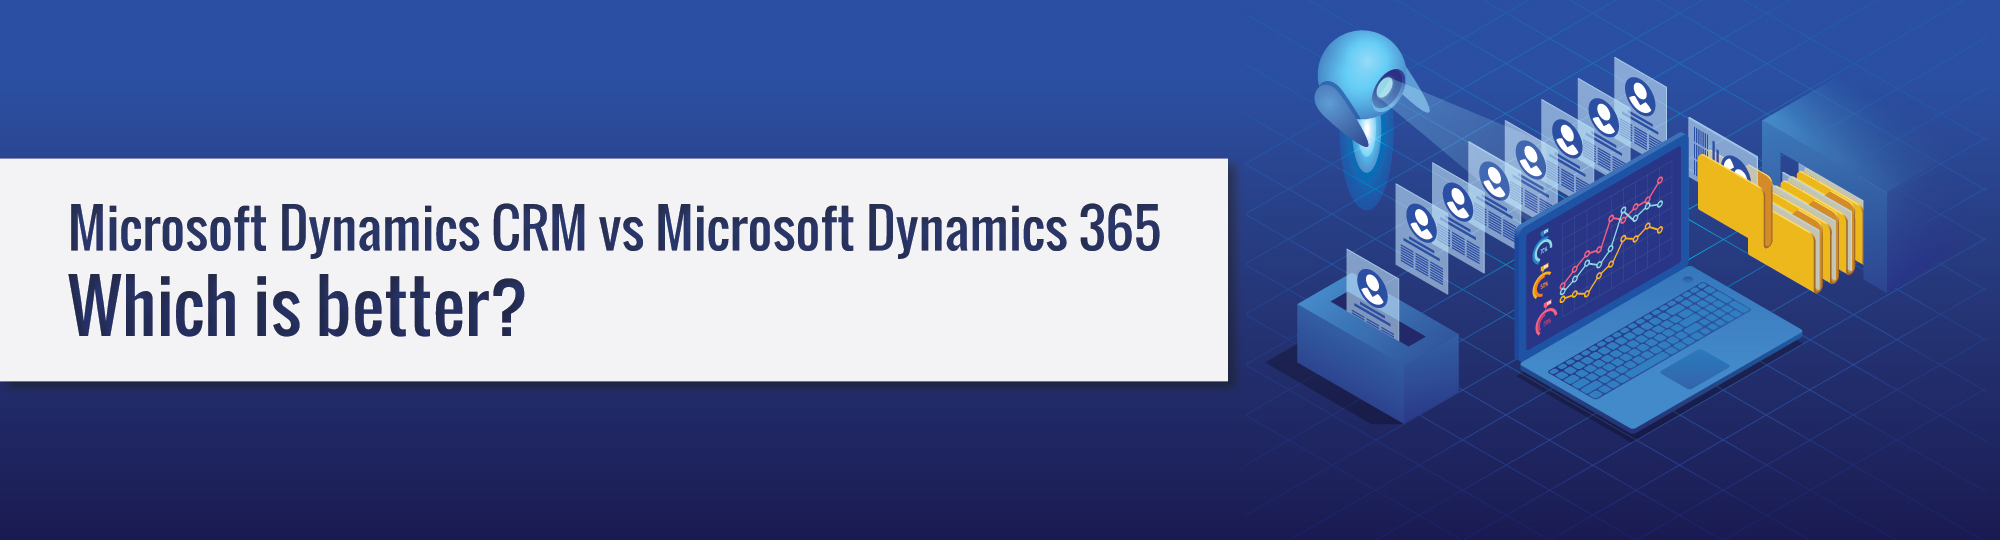 Microsoft Dynamics CRM vs Microsoft Dynamics 365- Which is better_-01